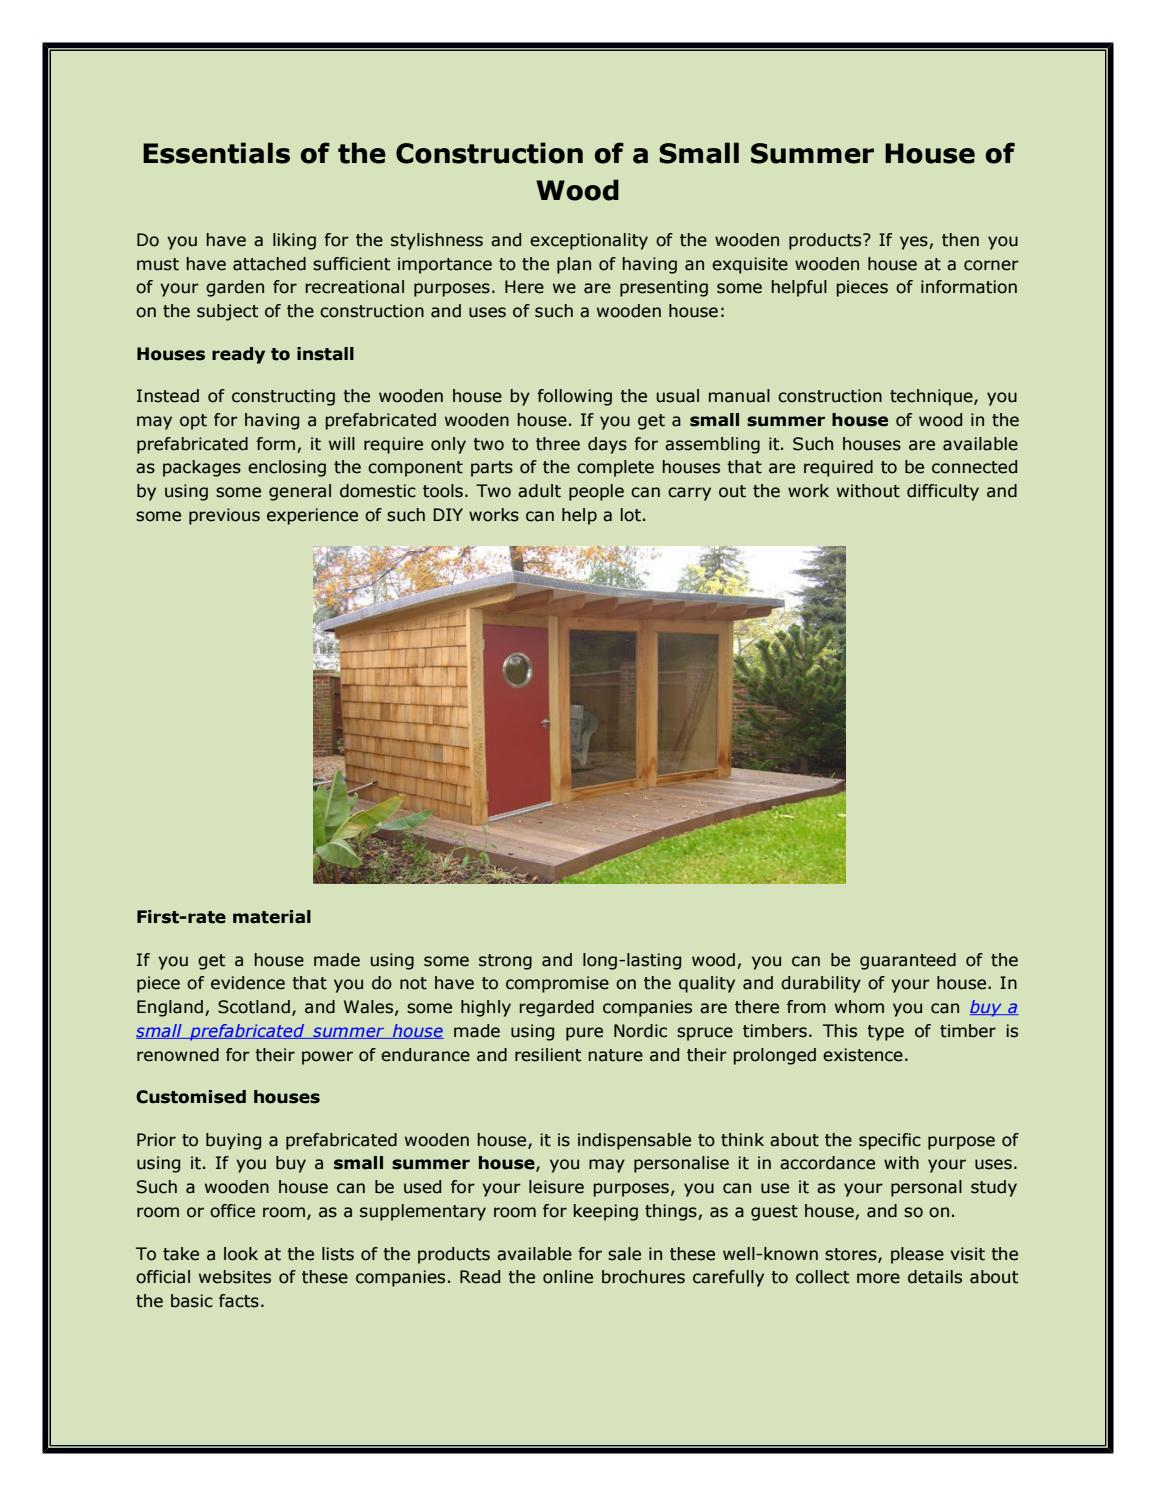 Essentials Of The Construction Of A Small Summer House Of Wood By